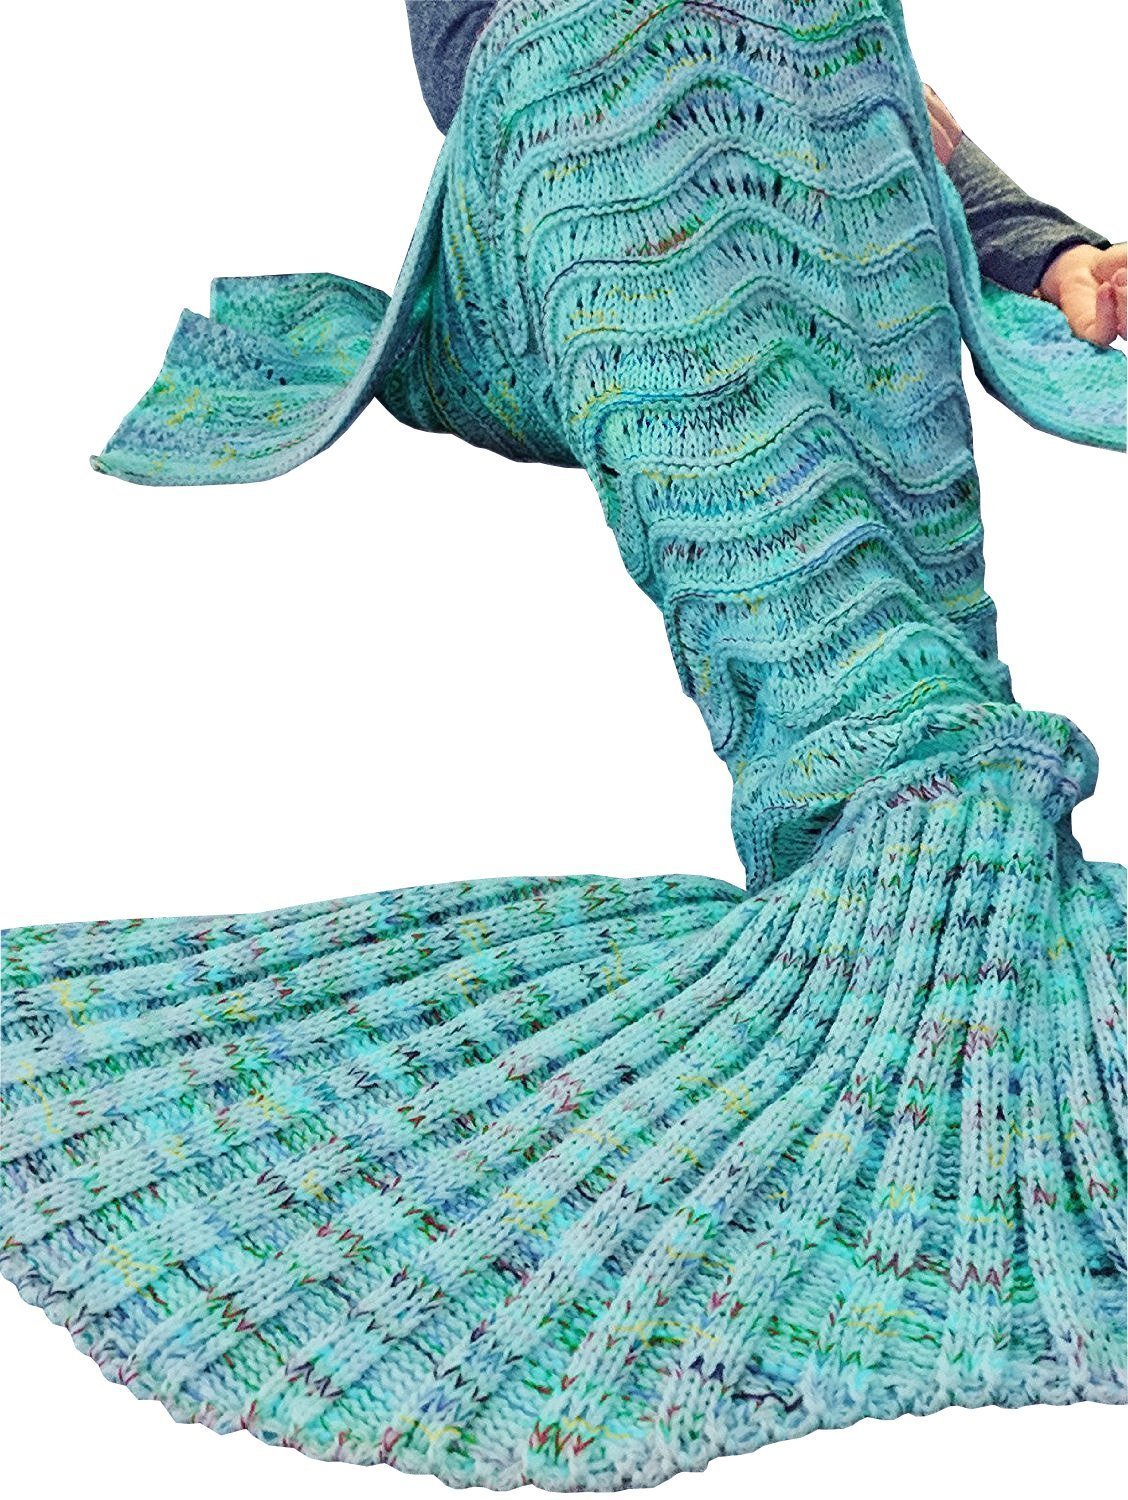 19 Fu Store Handmade Mermaid Tail Blanket For Adult